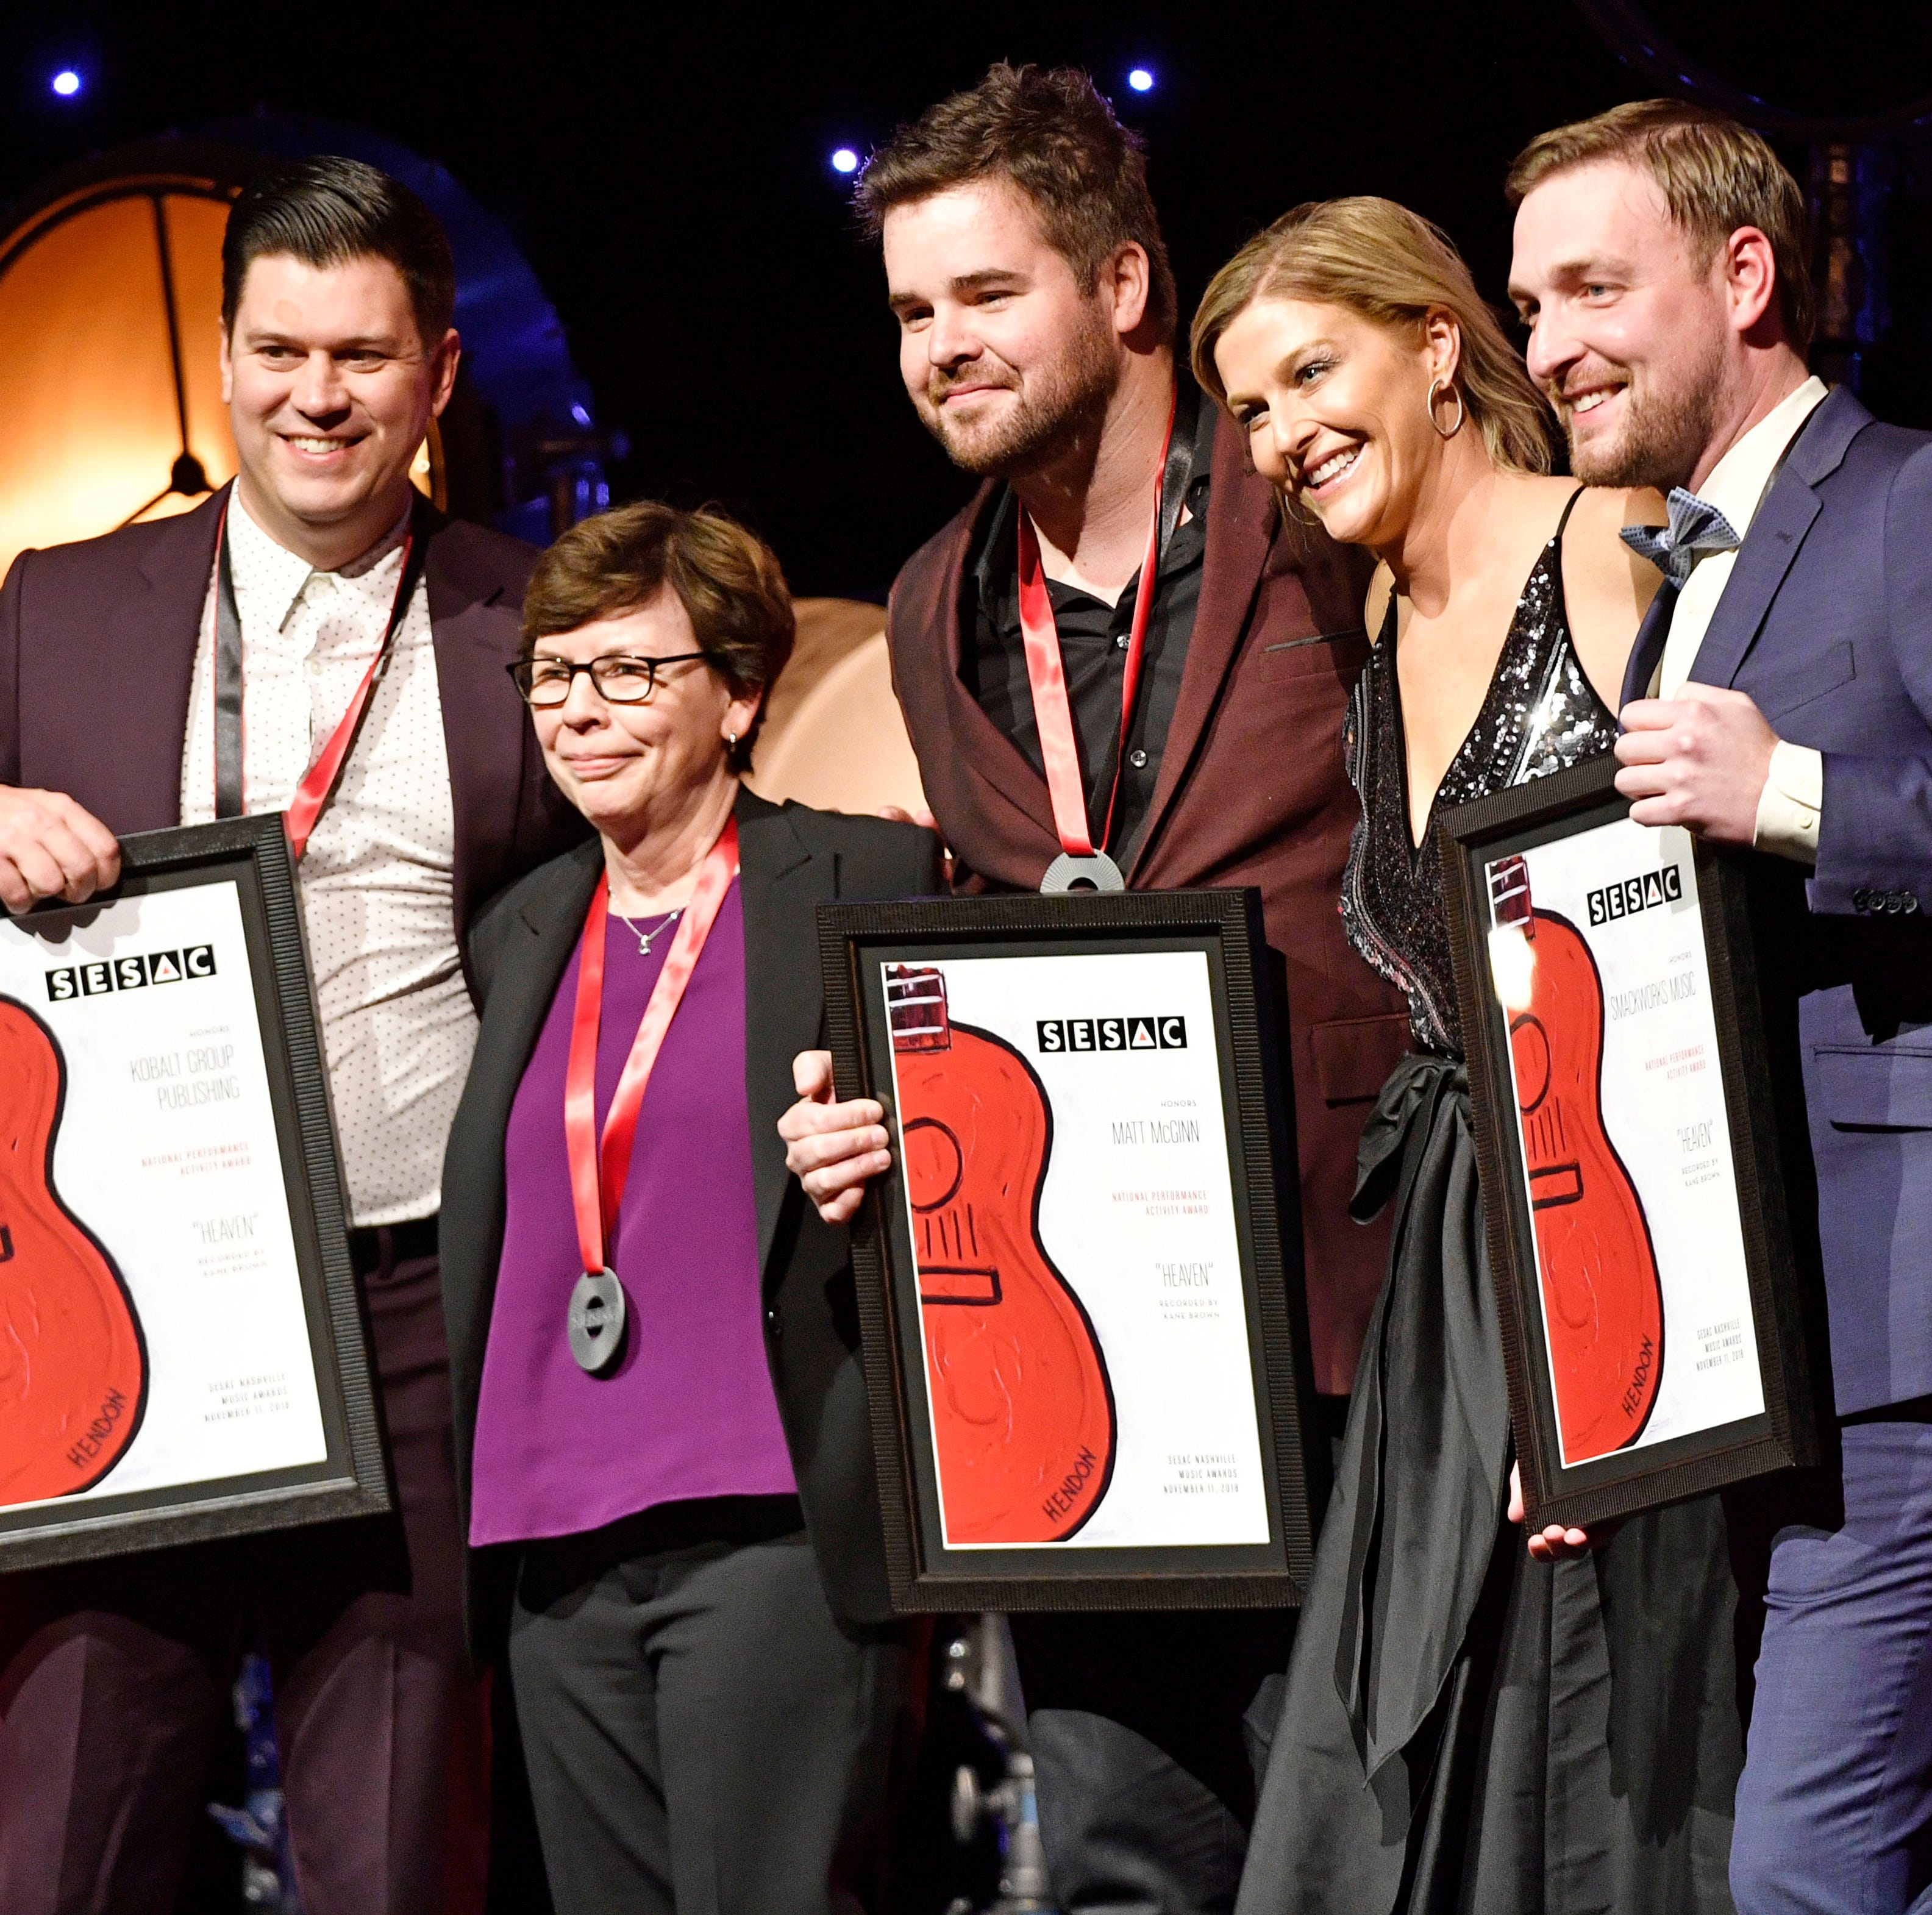 SESAC Nashville Awards: Matt McGinn named Songwriter of the Year